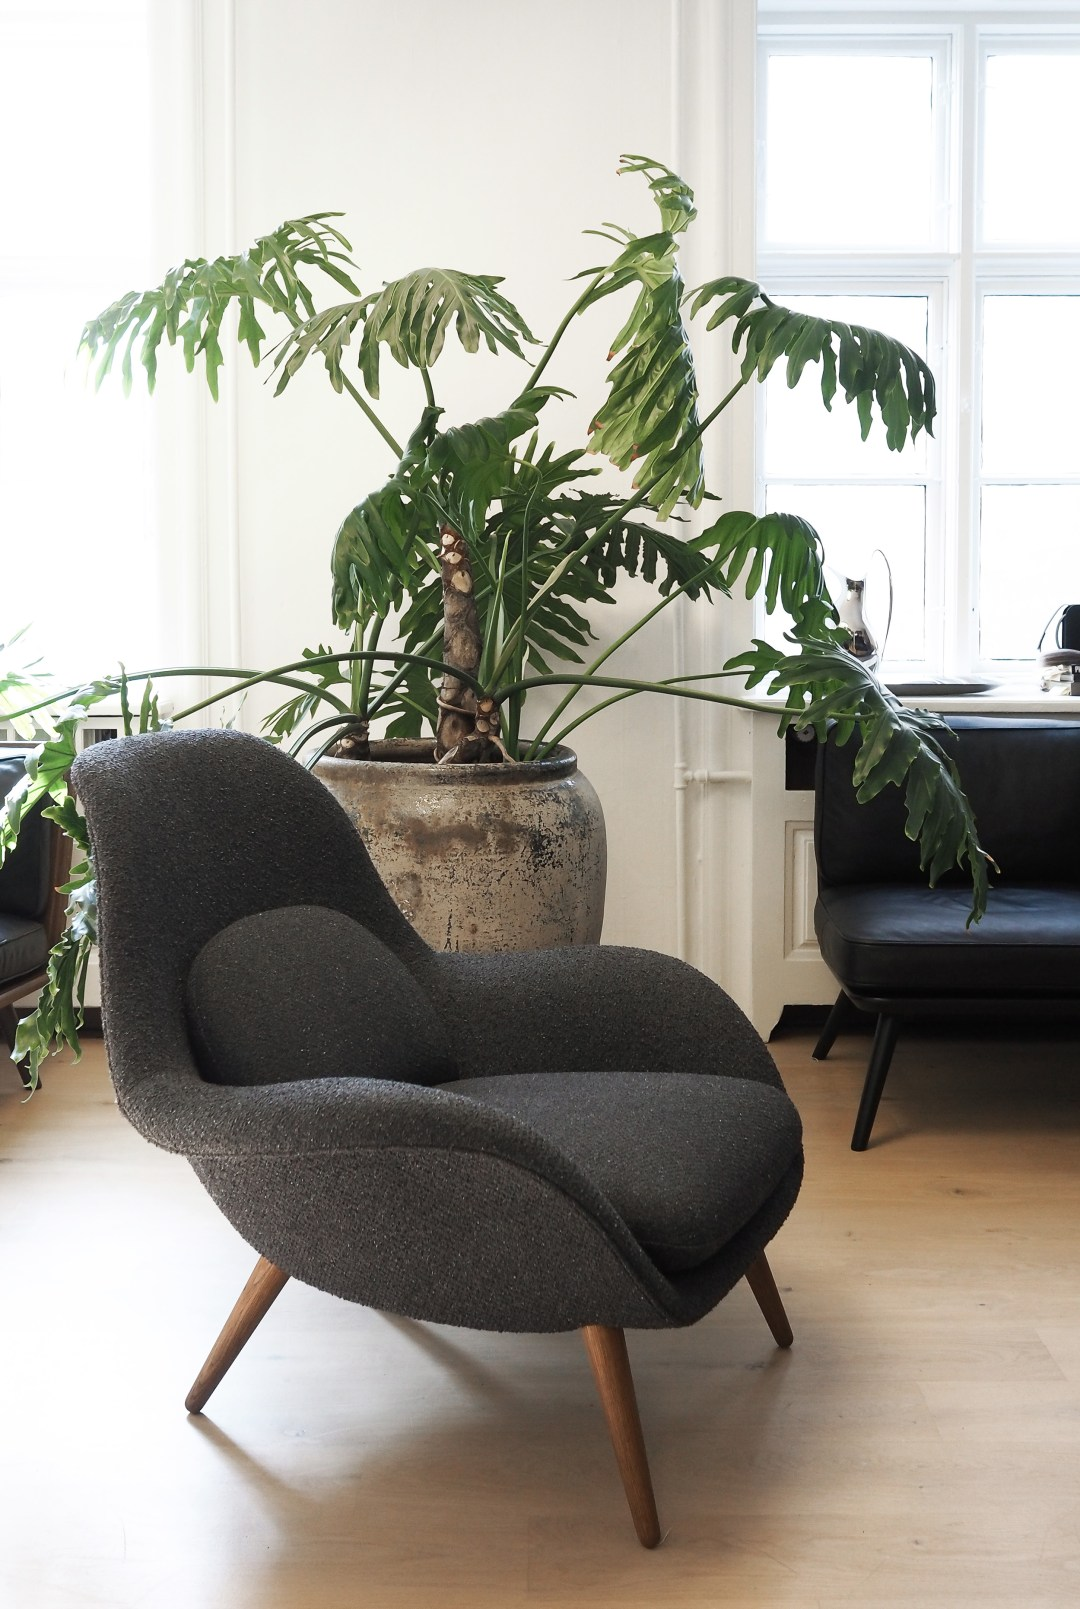 The Swoon Lounge Chair designed by Space Copenhagen for Fredericia. Danish Design